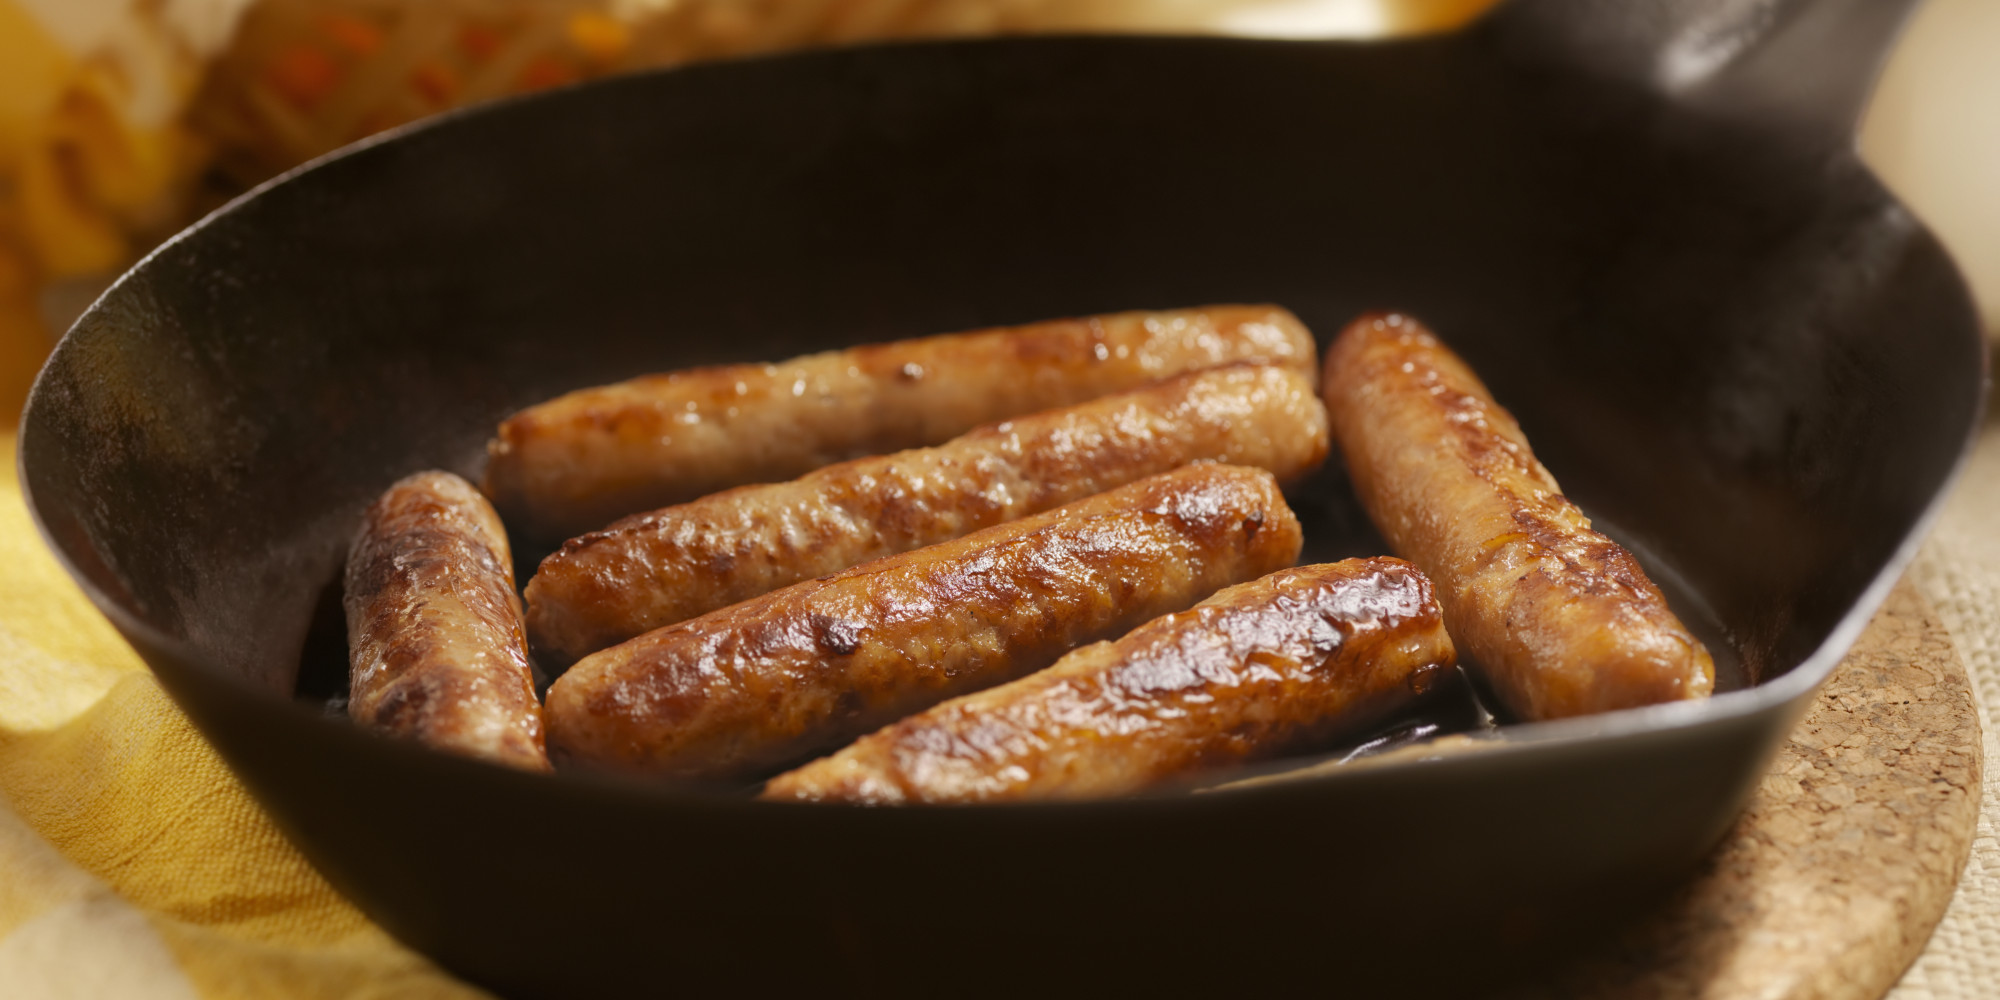 The Ultimate Breakfast Sausage Taste Test | HuffPost